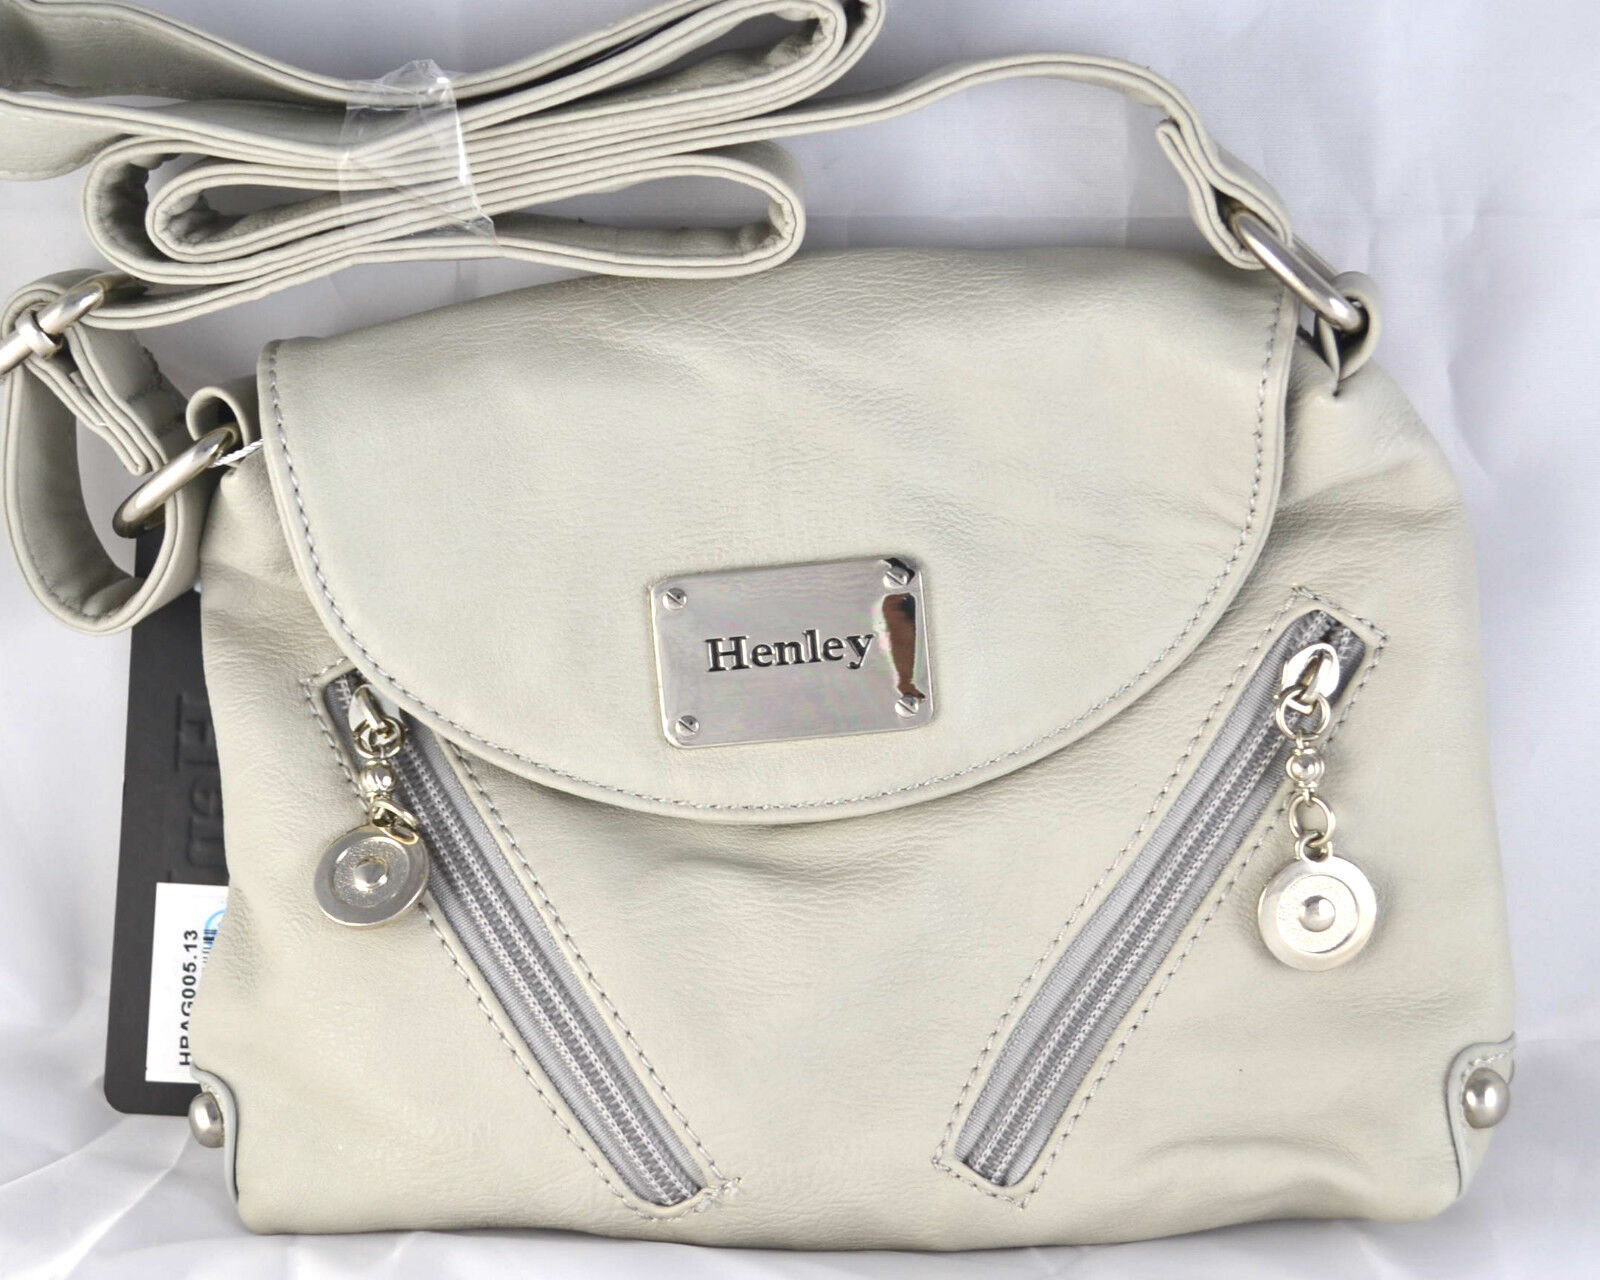 Henley Womens Faux Leather Cross Body Messenger Shoulder Pink Bag Zipped Handbag